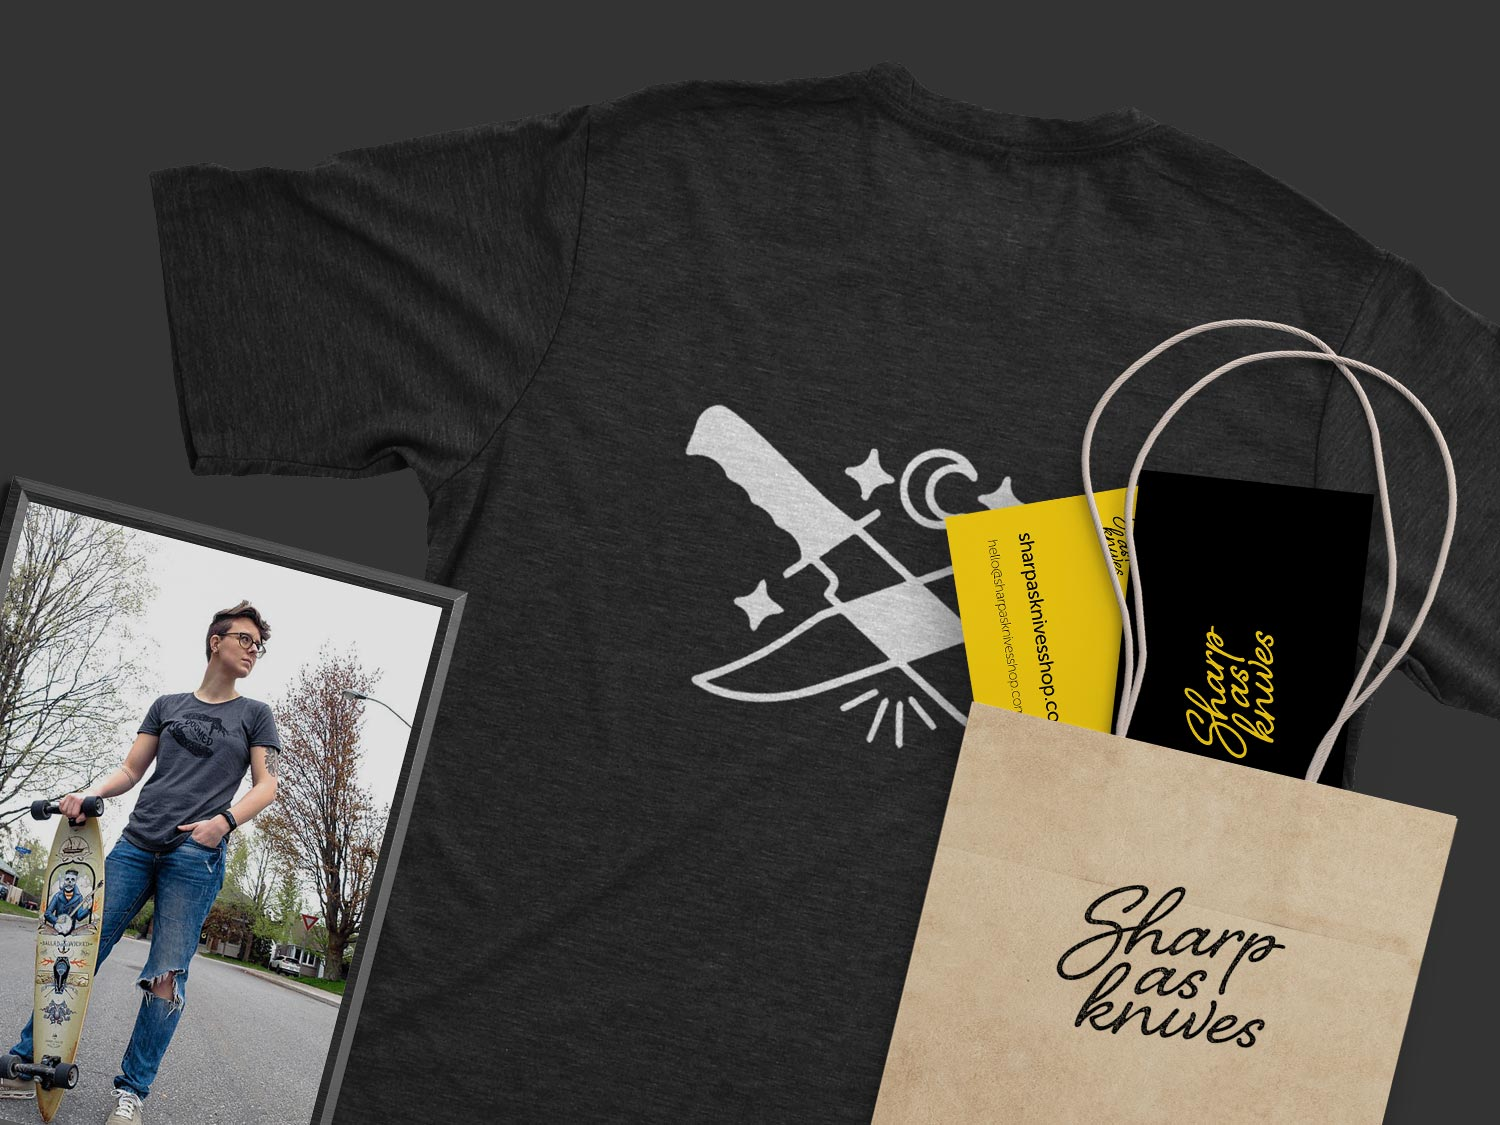 Branding collateral (t-shirt design, business cards, and bag) for Sharp as Knives